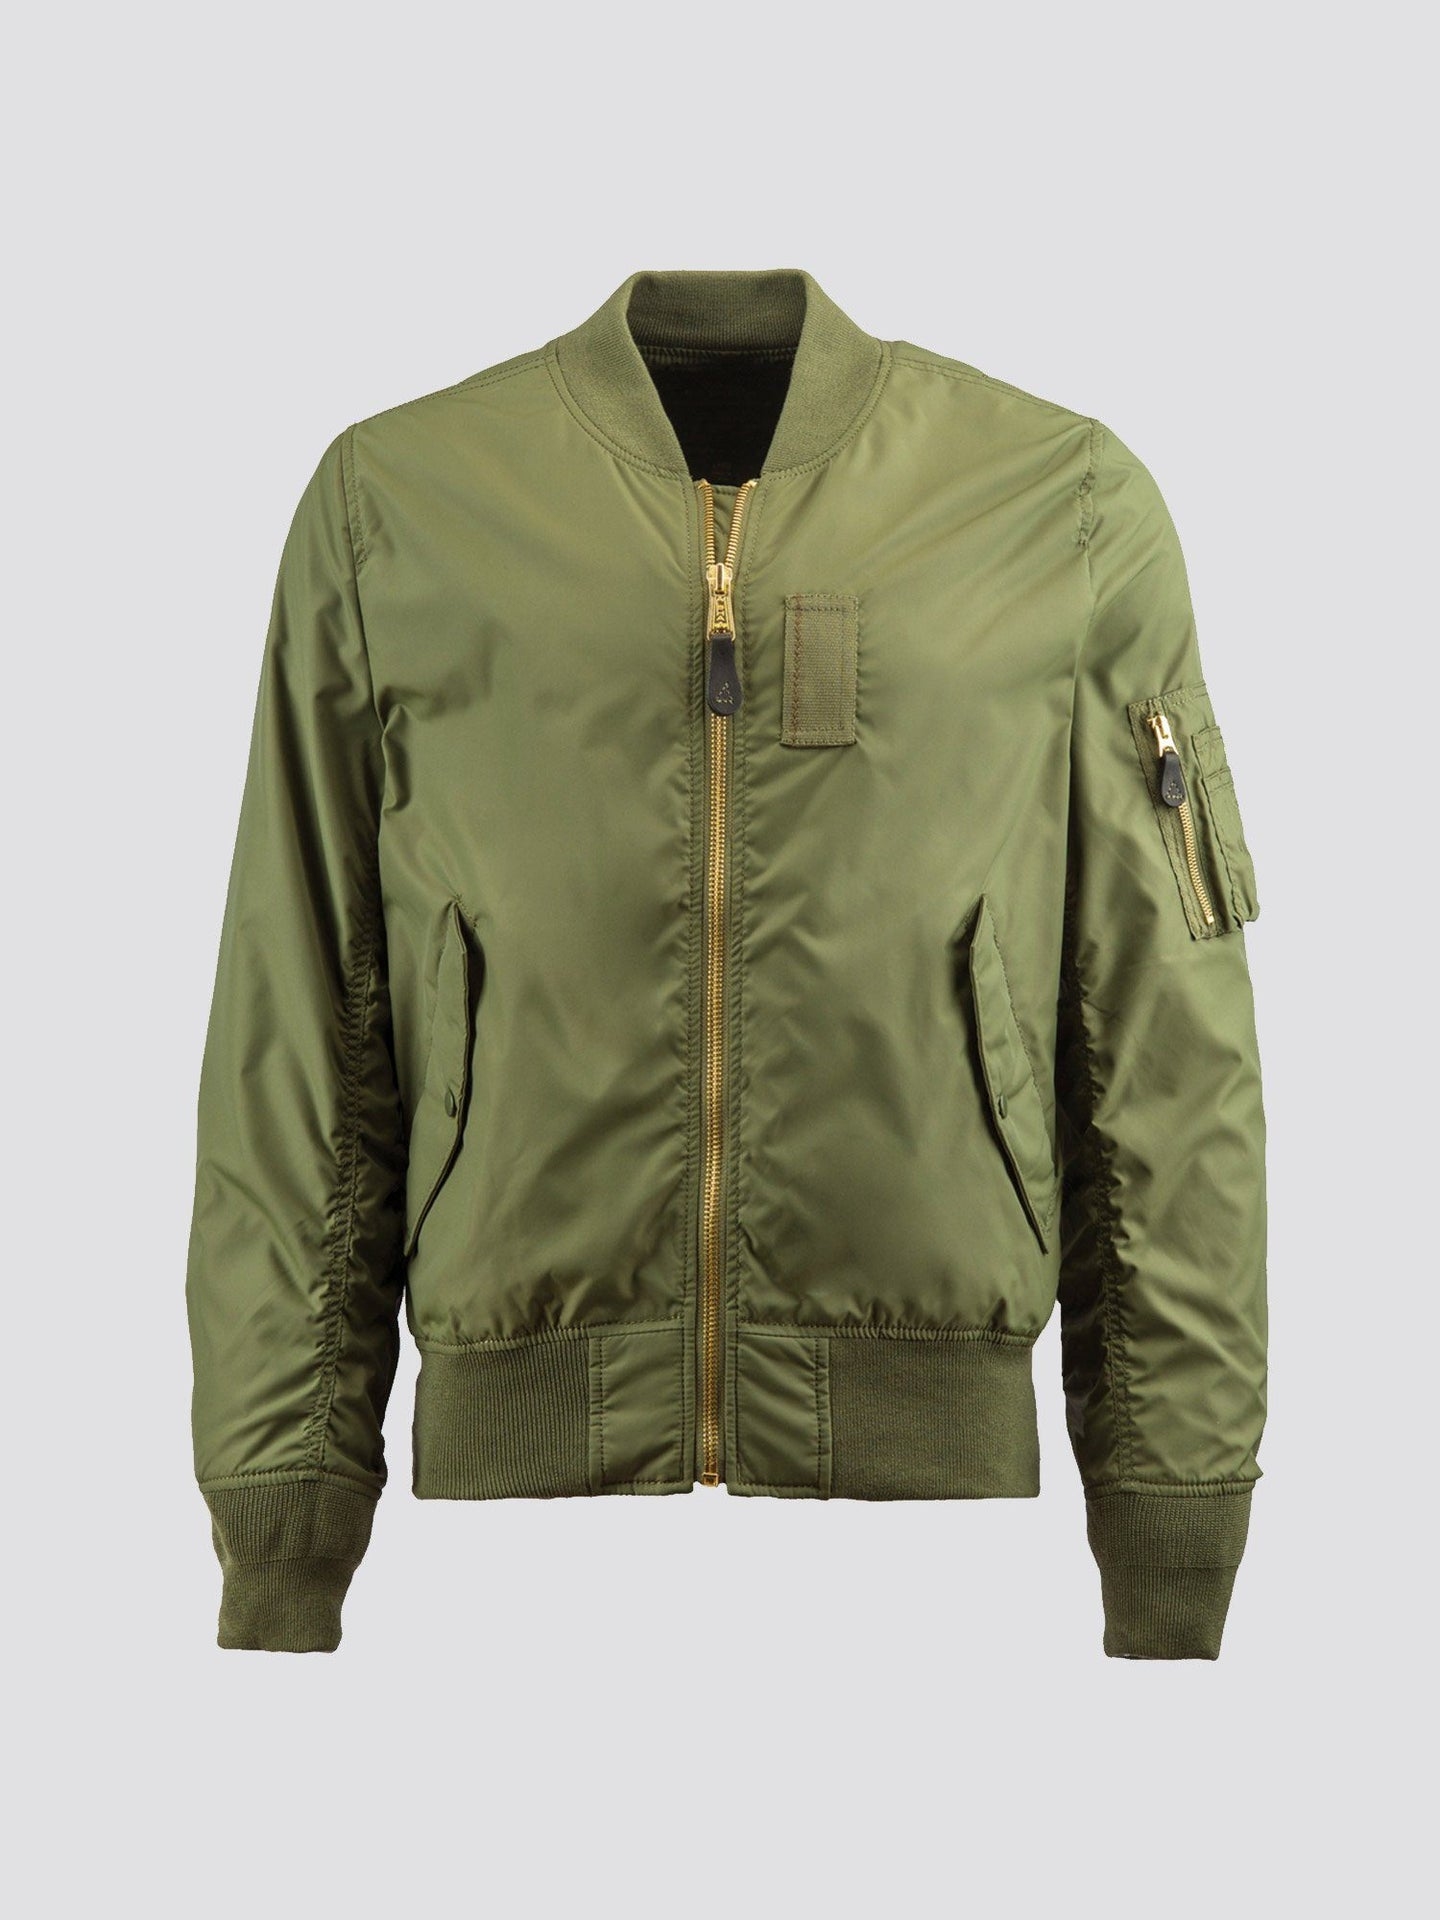 MA-1 SKYMASTER BOMBER JACKET OUTERWEAR Alpha Industries SAGE GREEN 2XL